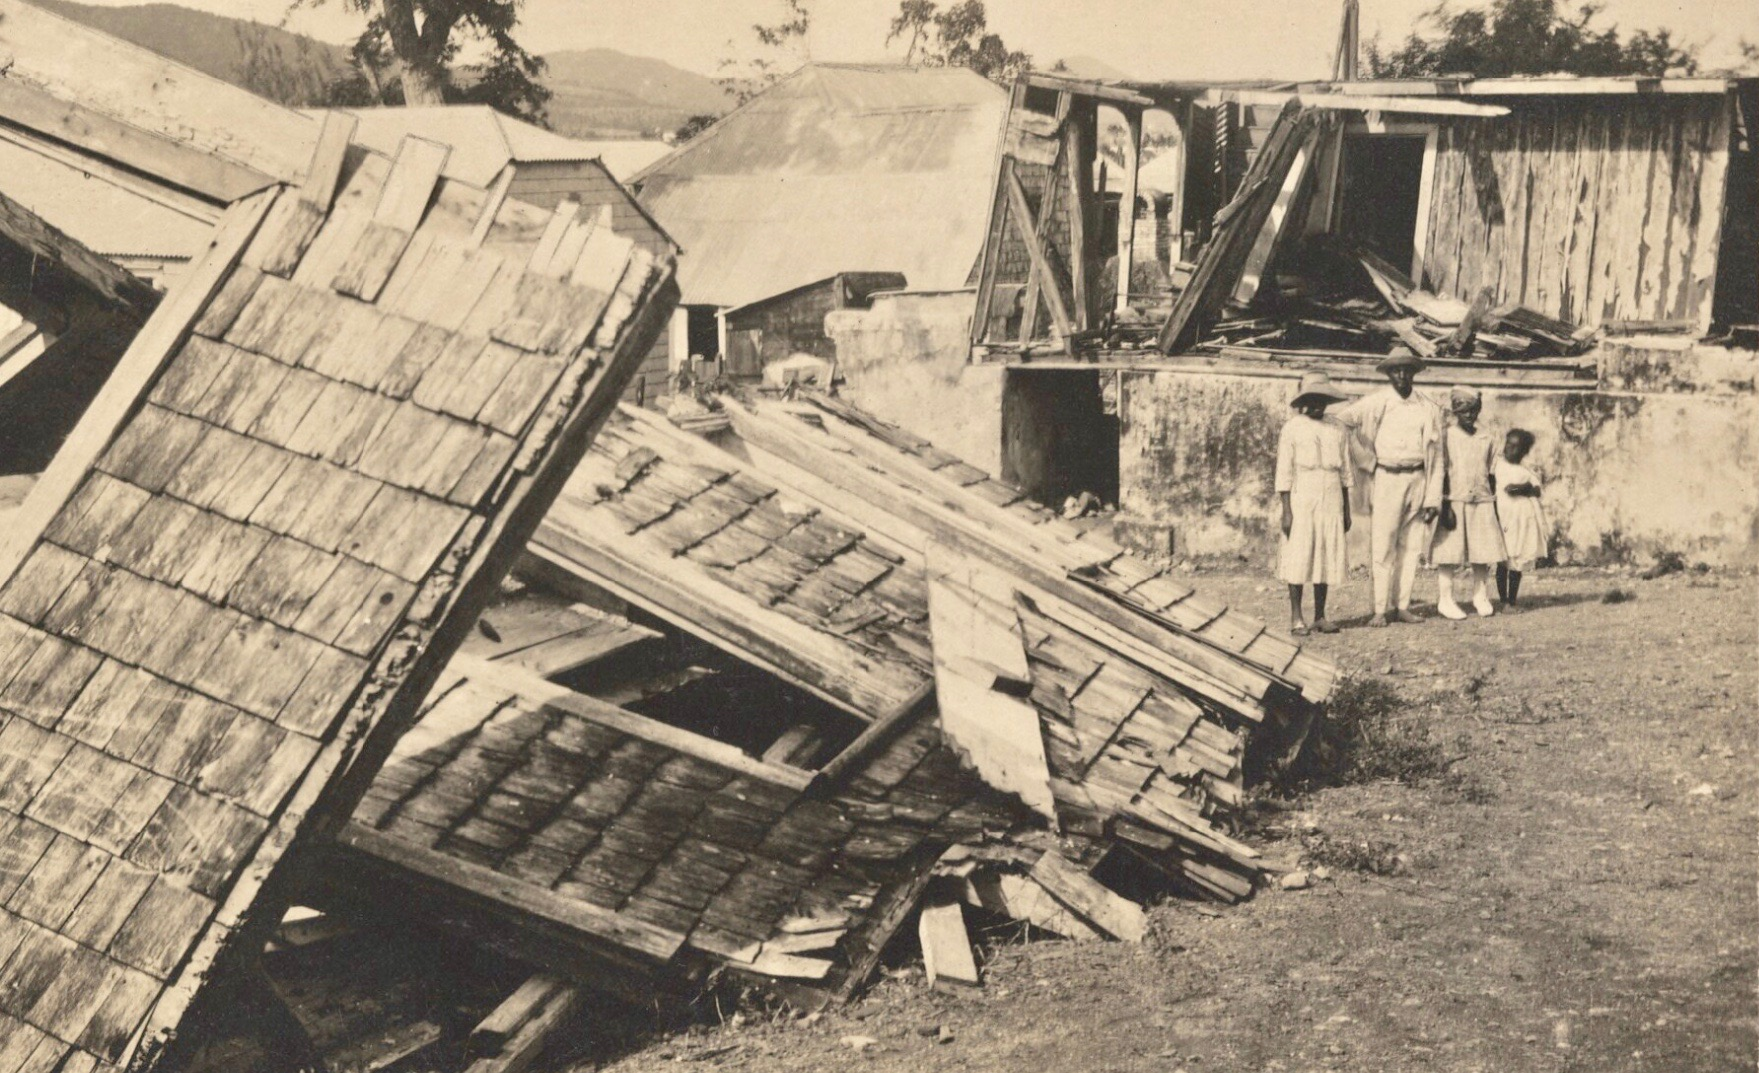 Hurricane of 1916 on St. Croix, Photo courtesy of the Danish National Archives